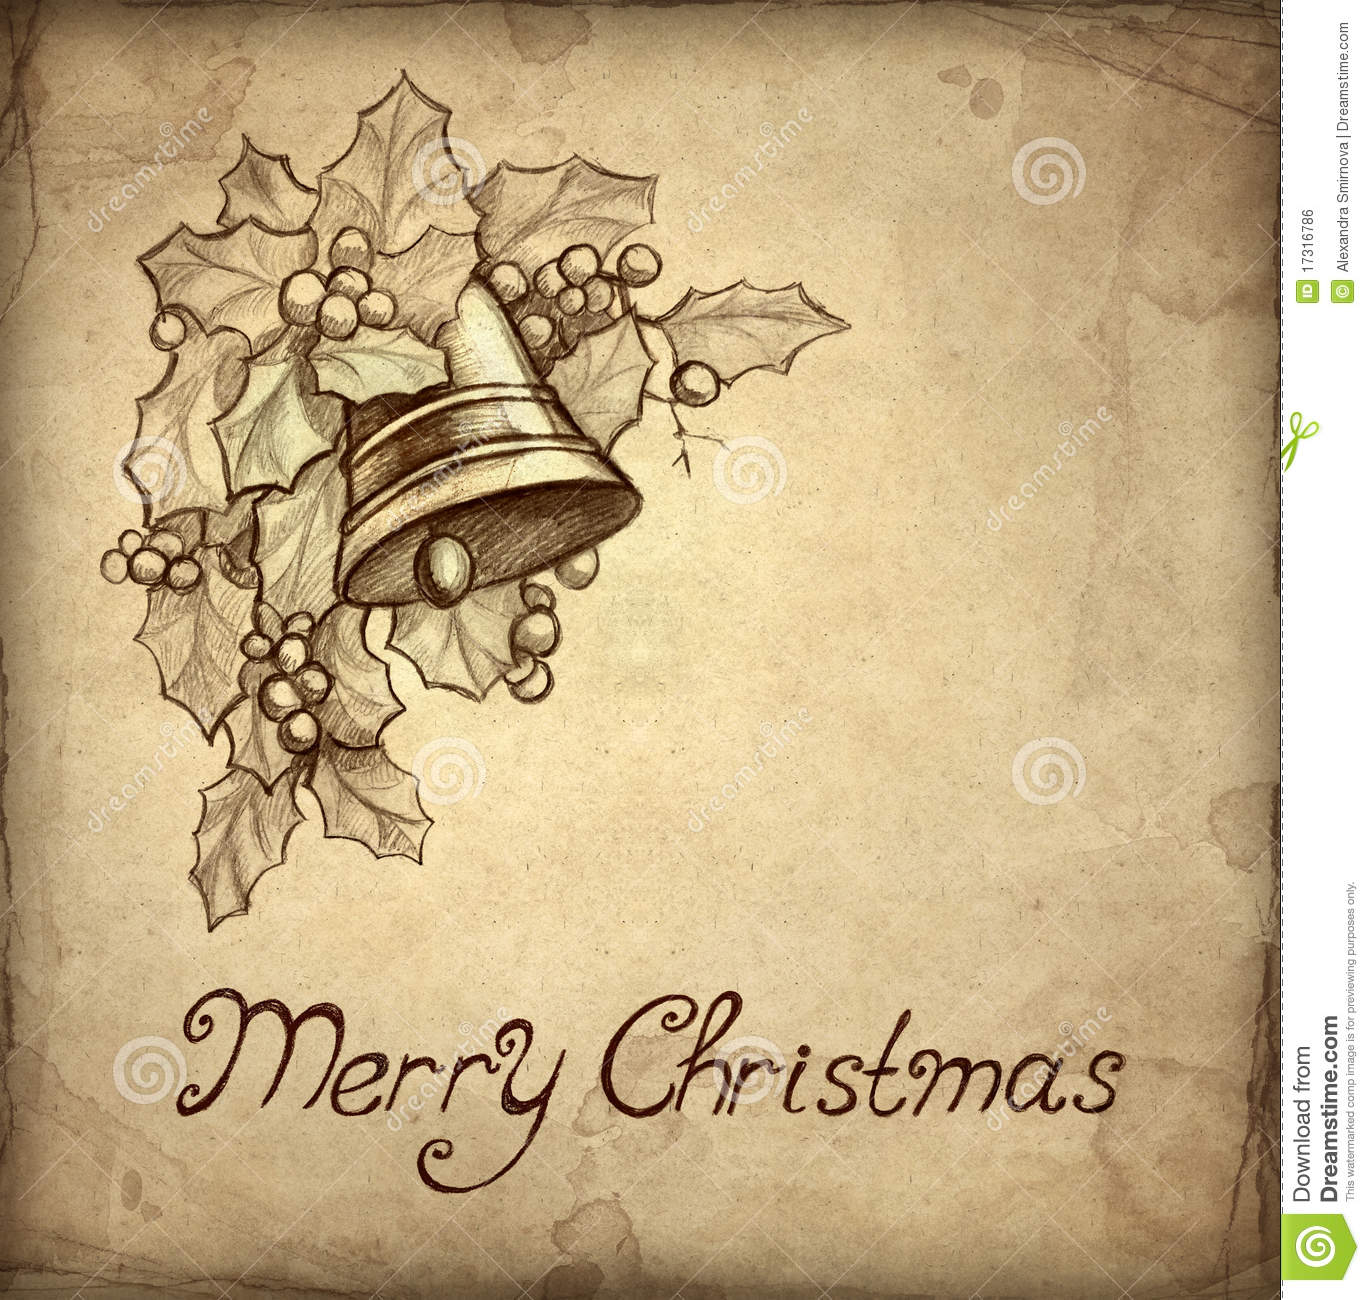 Old Christmas Greeting Card Royalty Free Stock Image - Image: 17316786